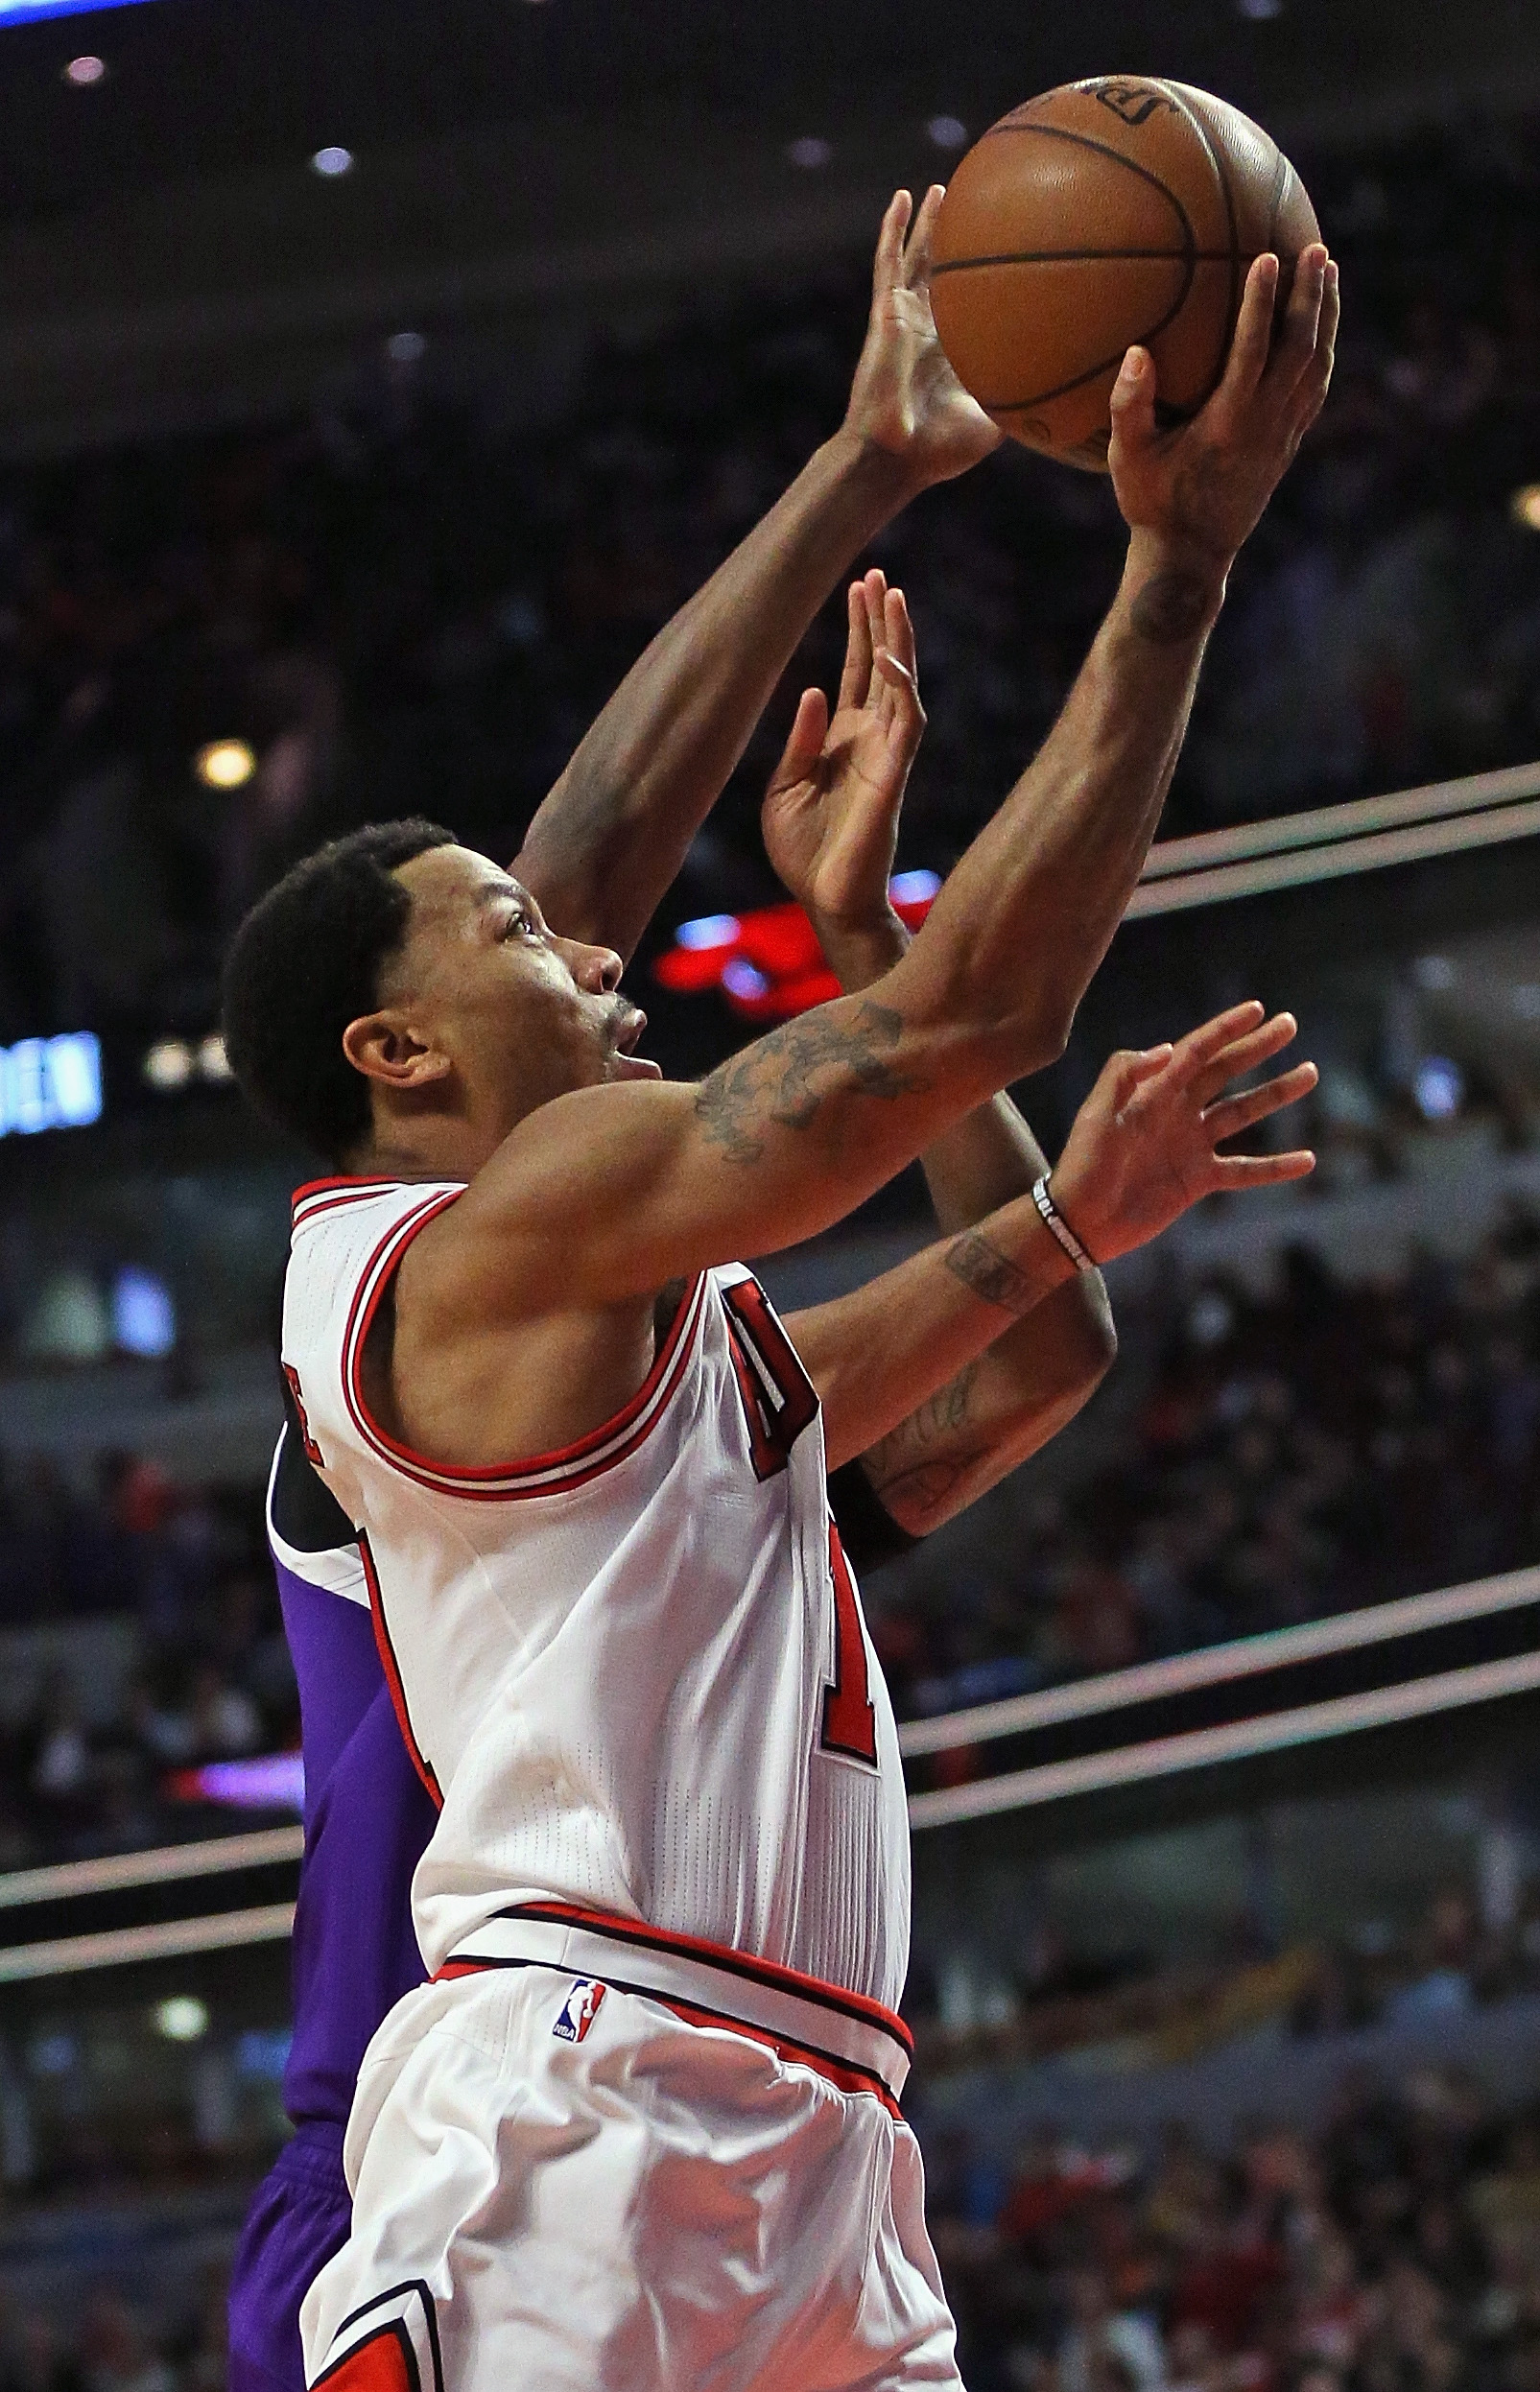 CHICAGO, IL - MARCH 21:  Derrick Rose #1 of the Chicago Bulls drives to the basket against Rudy Gay #8 of the Sacramento Kings at the United Center on March 21, 2016 in Chicago, Illinois. The Bulls defeated the Kings 109-102. (Photo by Jonathan Daniel/Get